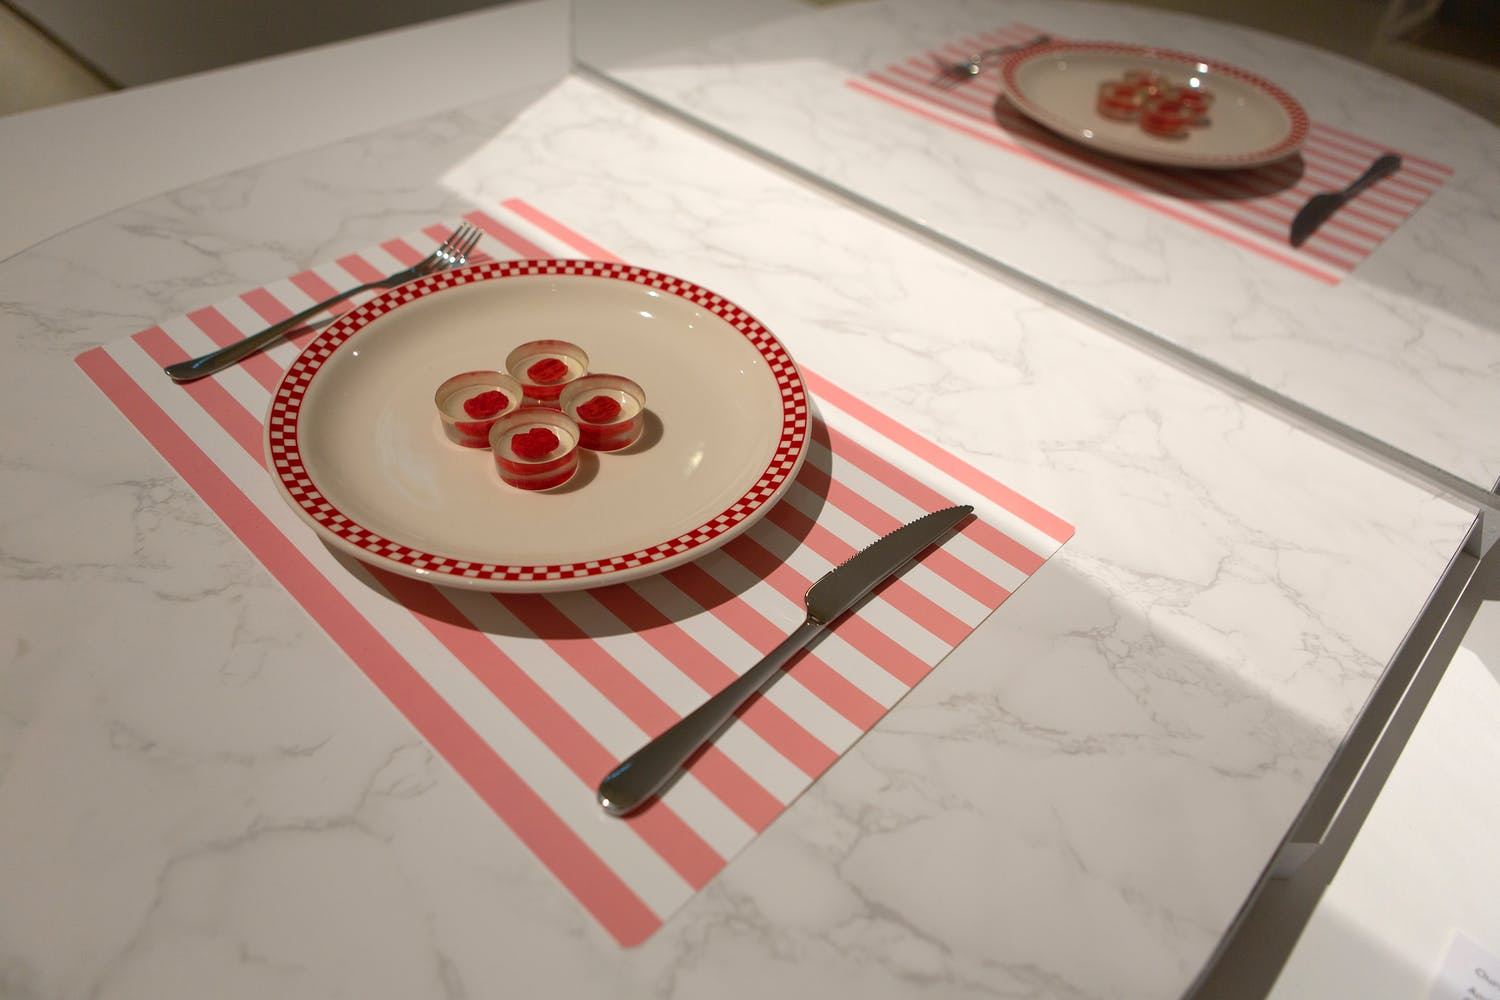 A placemat, knife and fork, and plate with four translucent disks